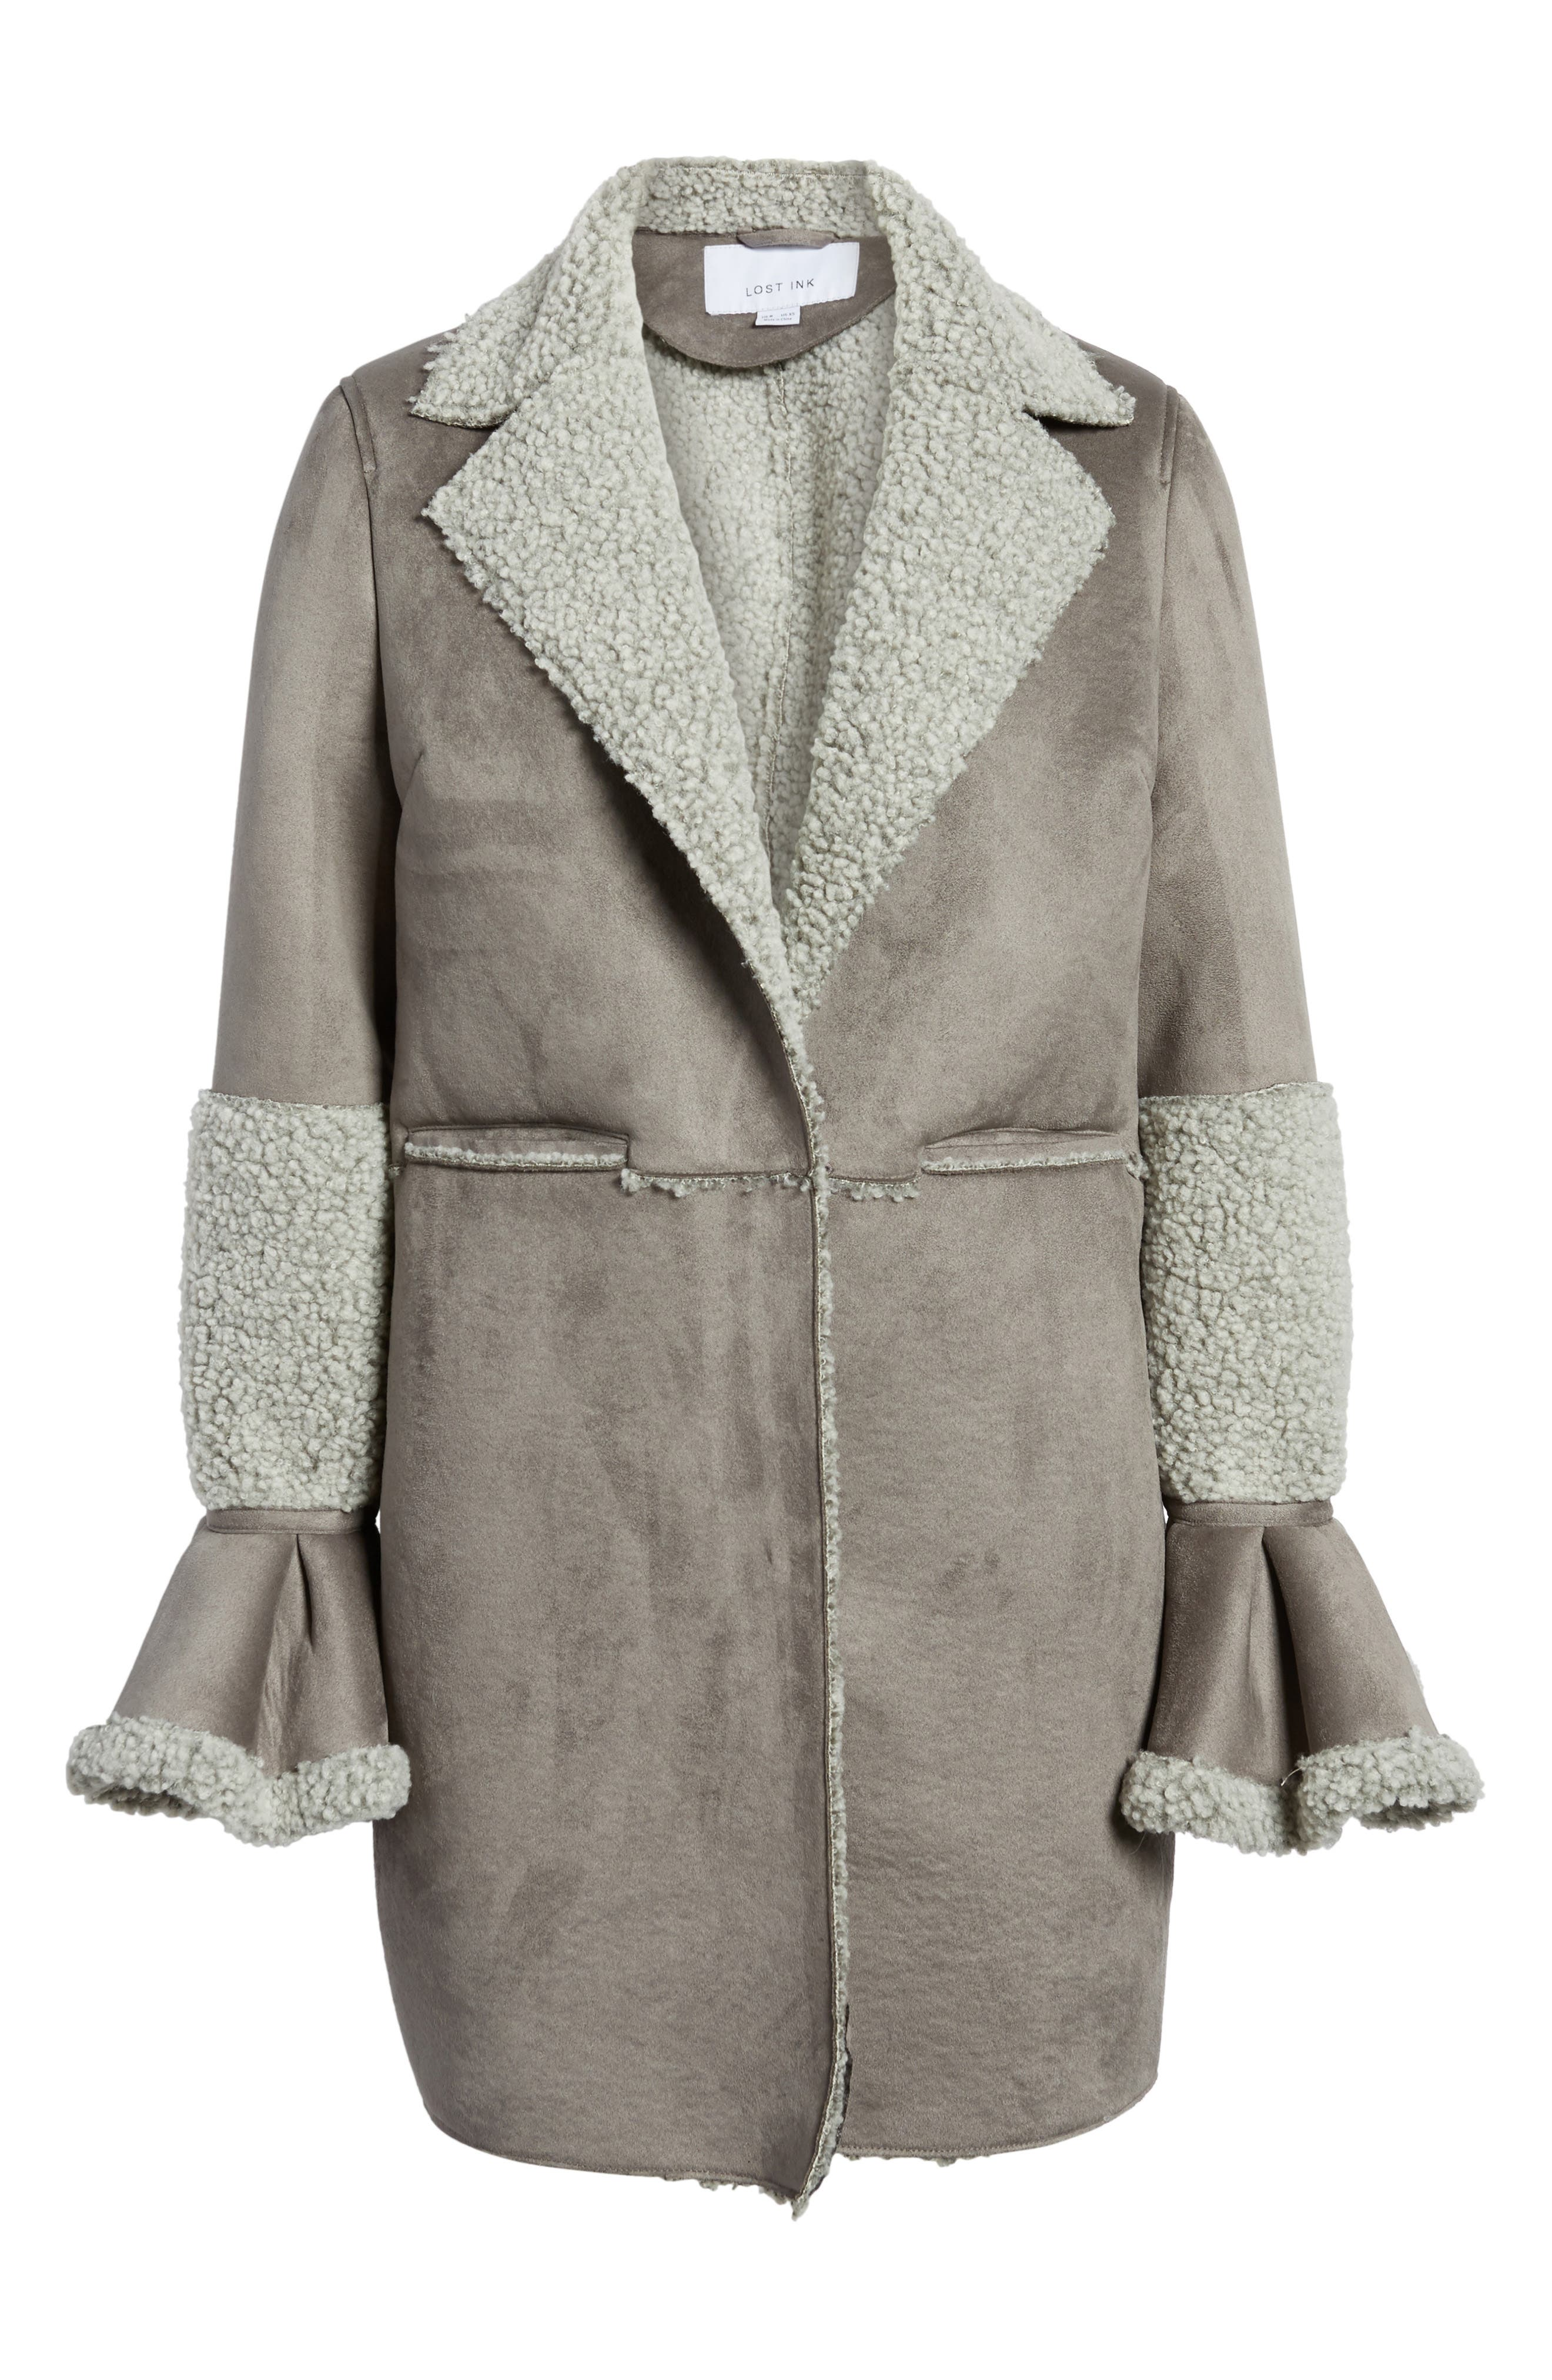 LOST INK,                             Faux Shearling Coat,                             Alternate thumbnail 5, color,                             020